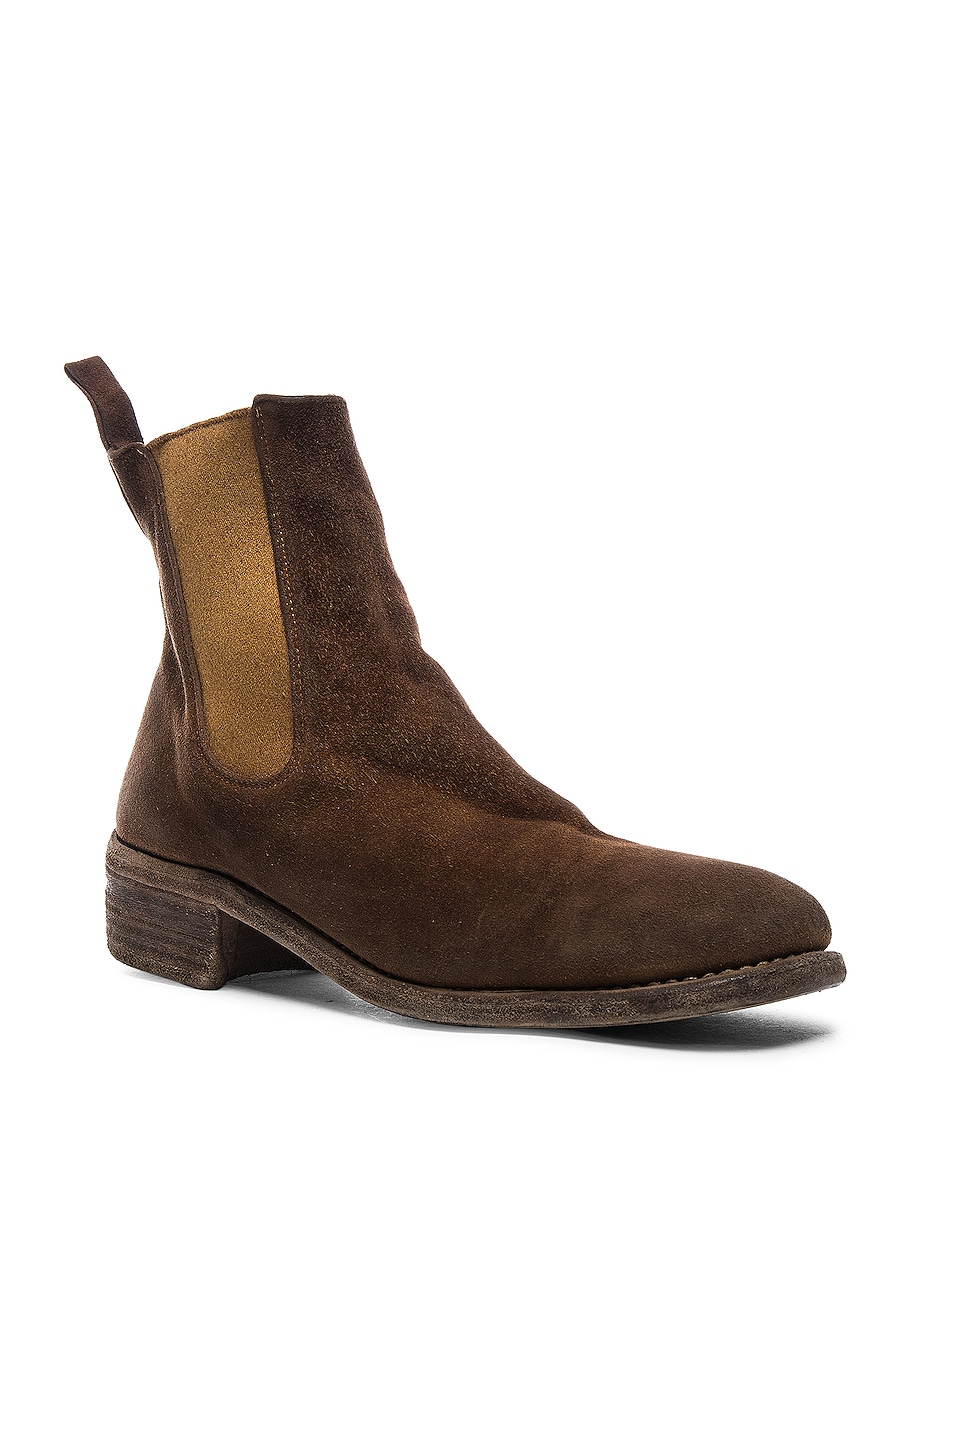 GUIDI Stag Chelsea Boots in .